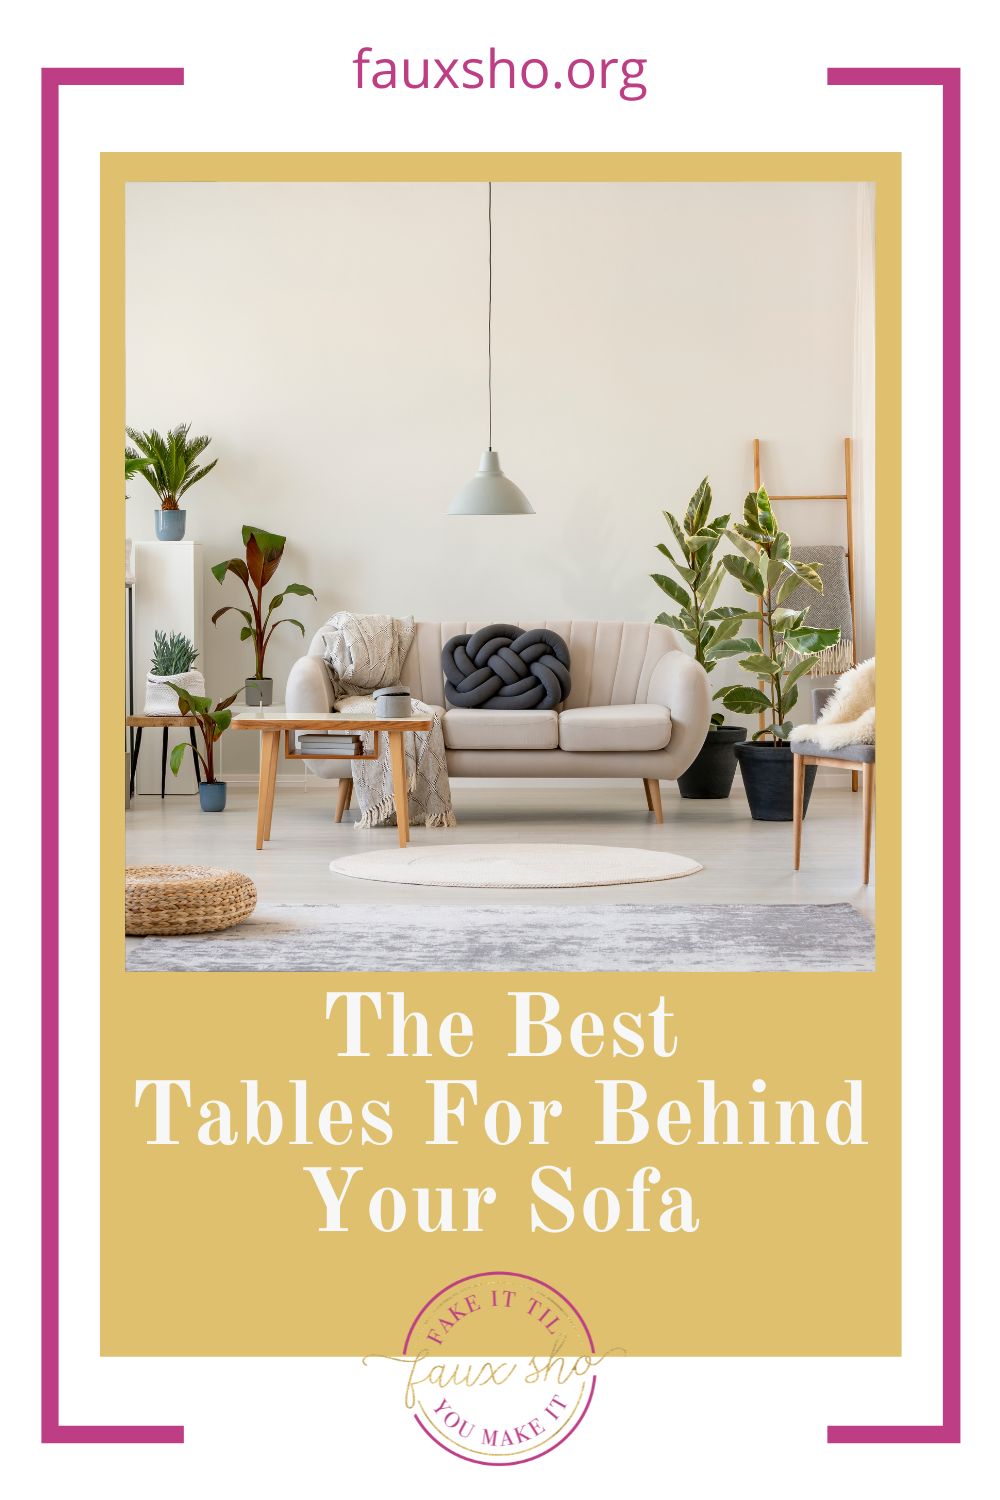 Fauxsho.org will fill you in on all you're missing. Find the perfect piece of furniture your home is missing! These tables are all perfect for filling the space behind your couch!